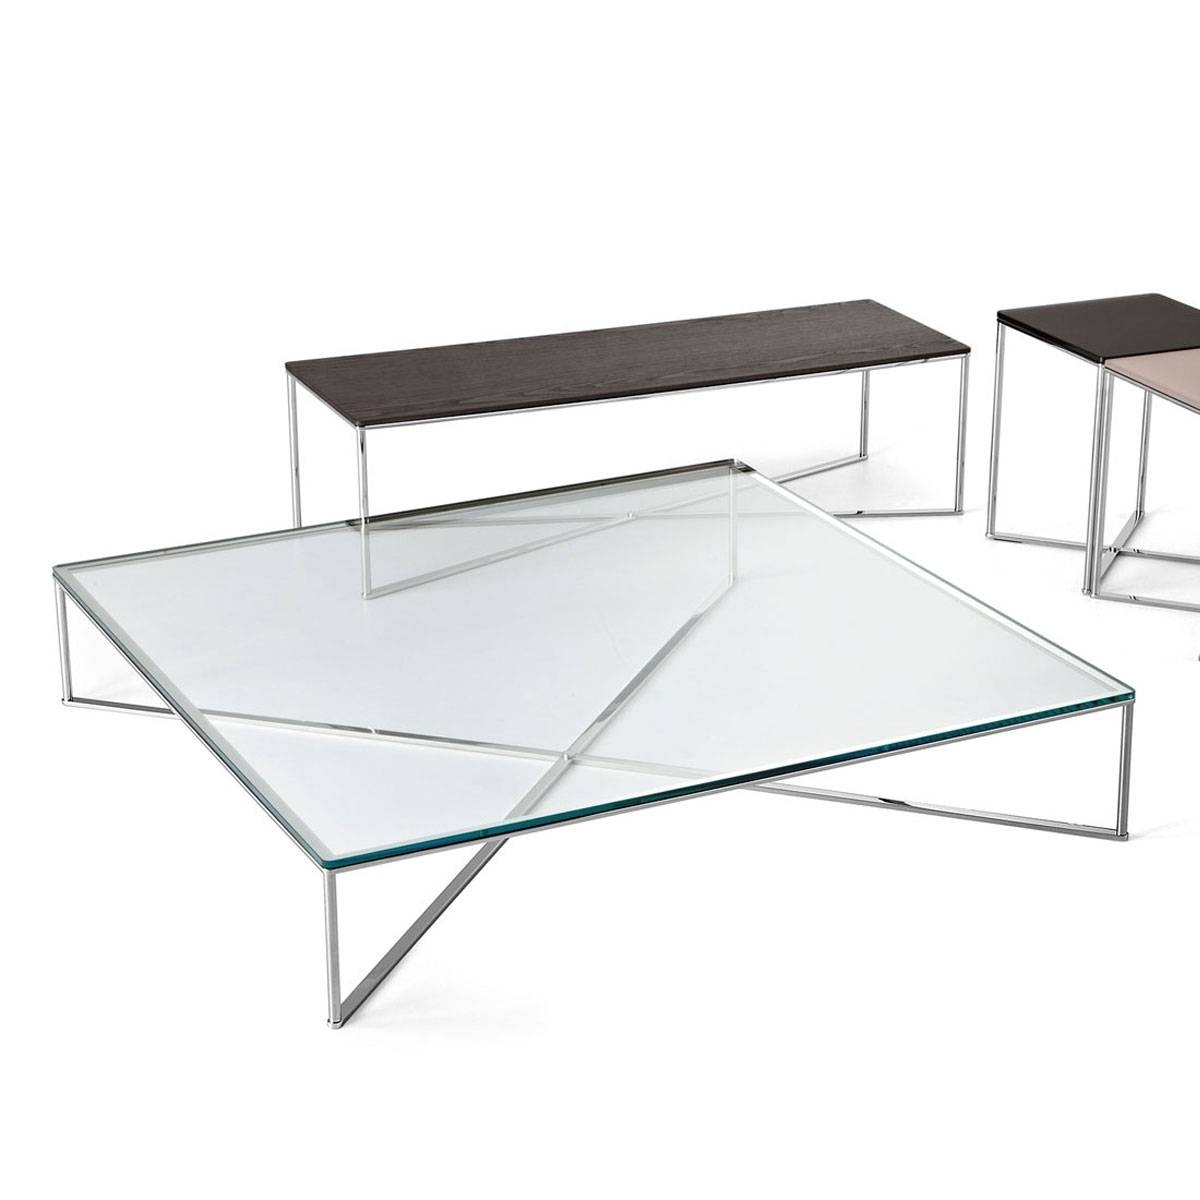 Coffee Table: Captivating Glass And Metal Coffee Table Design regarding Glass And Metal Coffee Tables (Image 6 of 30)